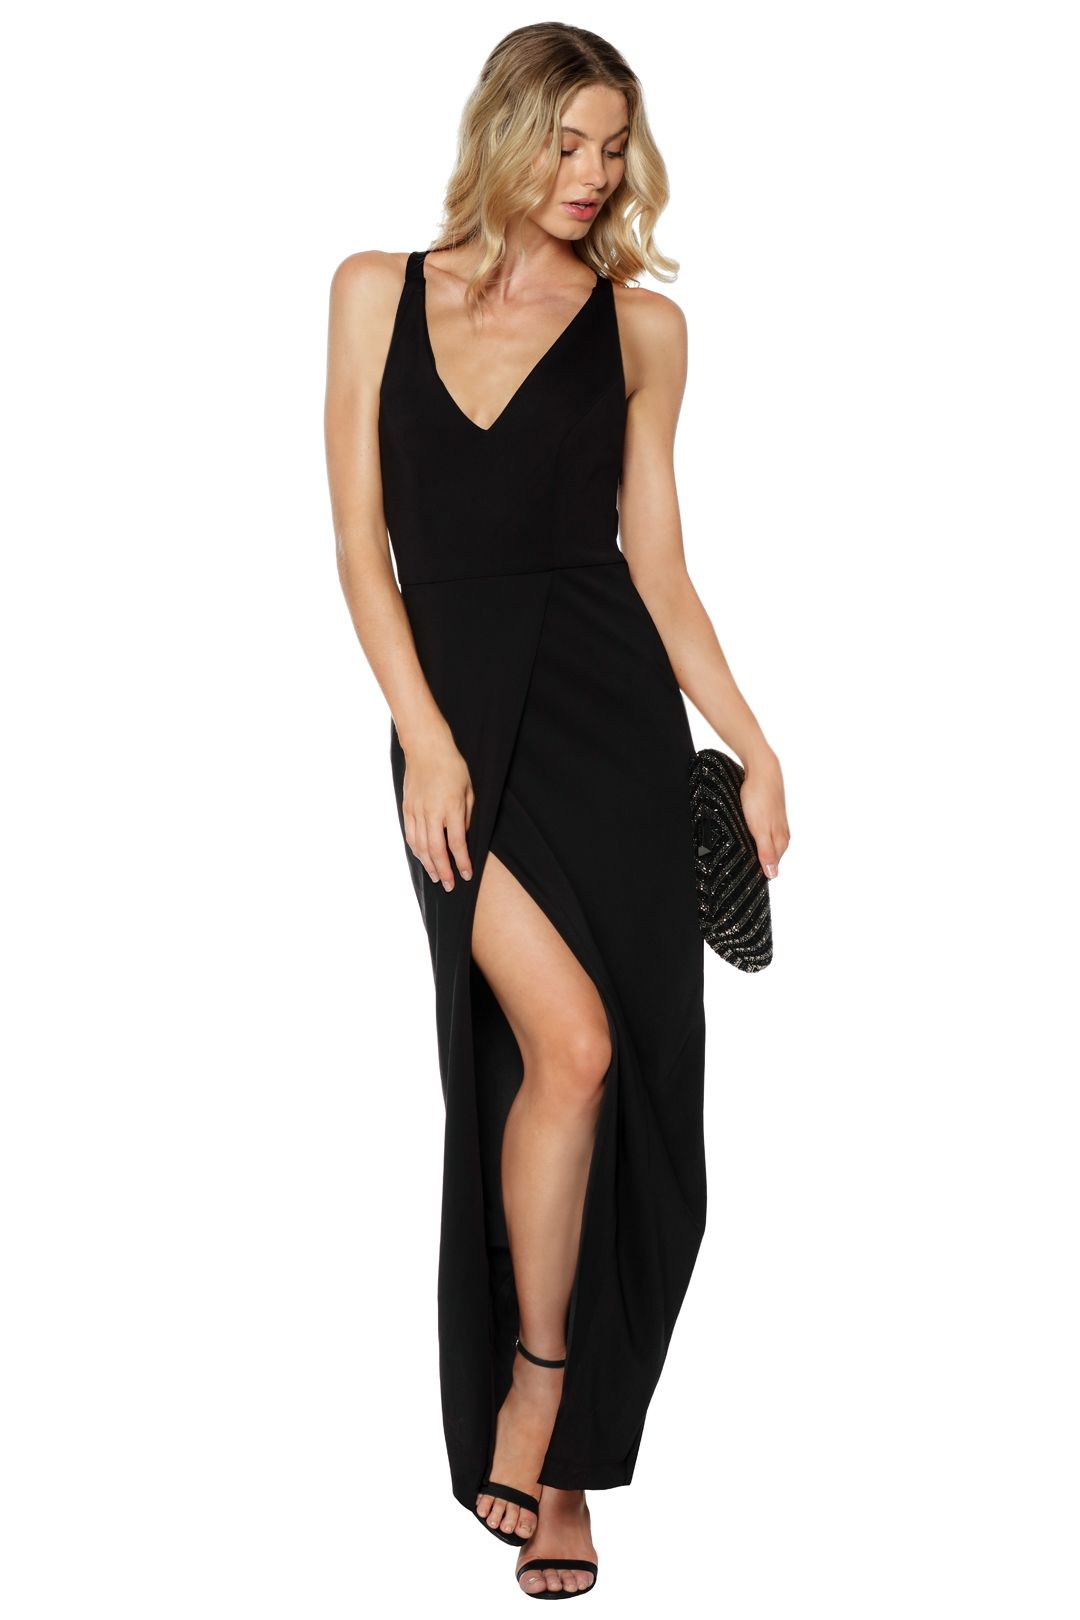 Grace and Hart - Gold Rush Neon Gown - Black -  Front